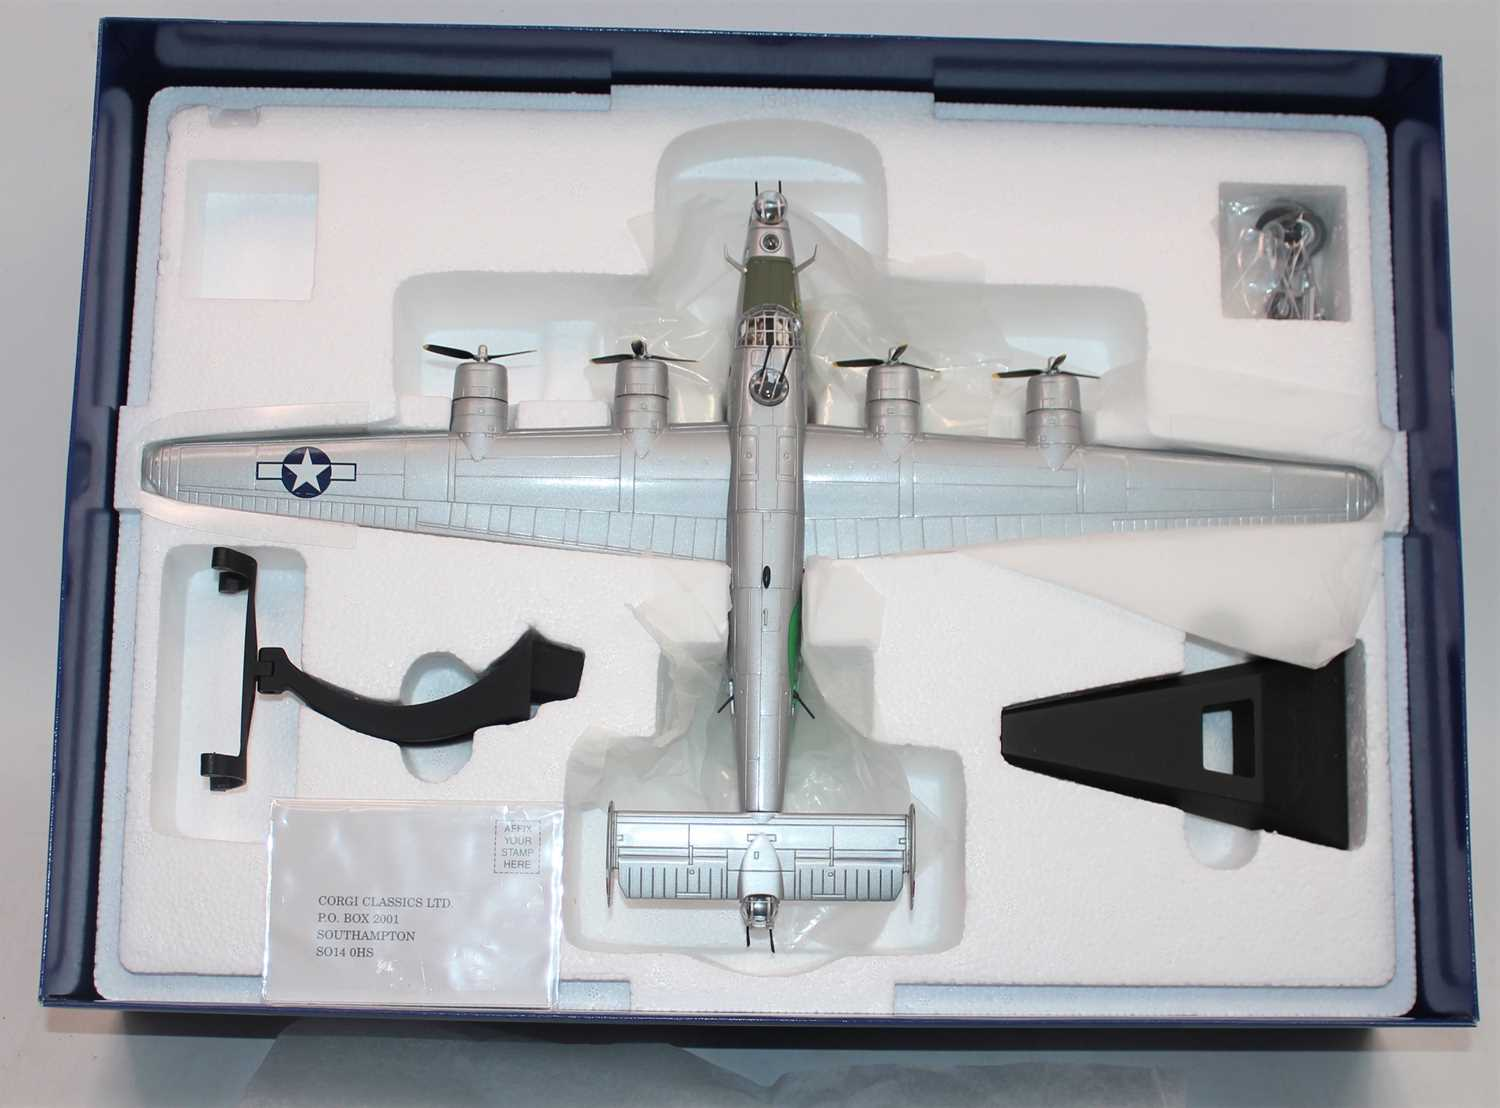 A Corgi Aviation Archive model No. AA34001 1/72 scale diecast model of a Consolidated B-24J - Image 2 of 2